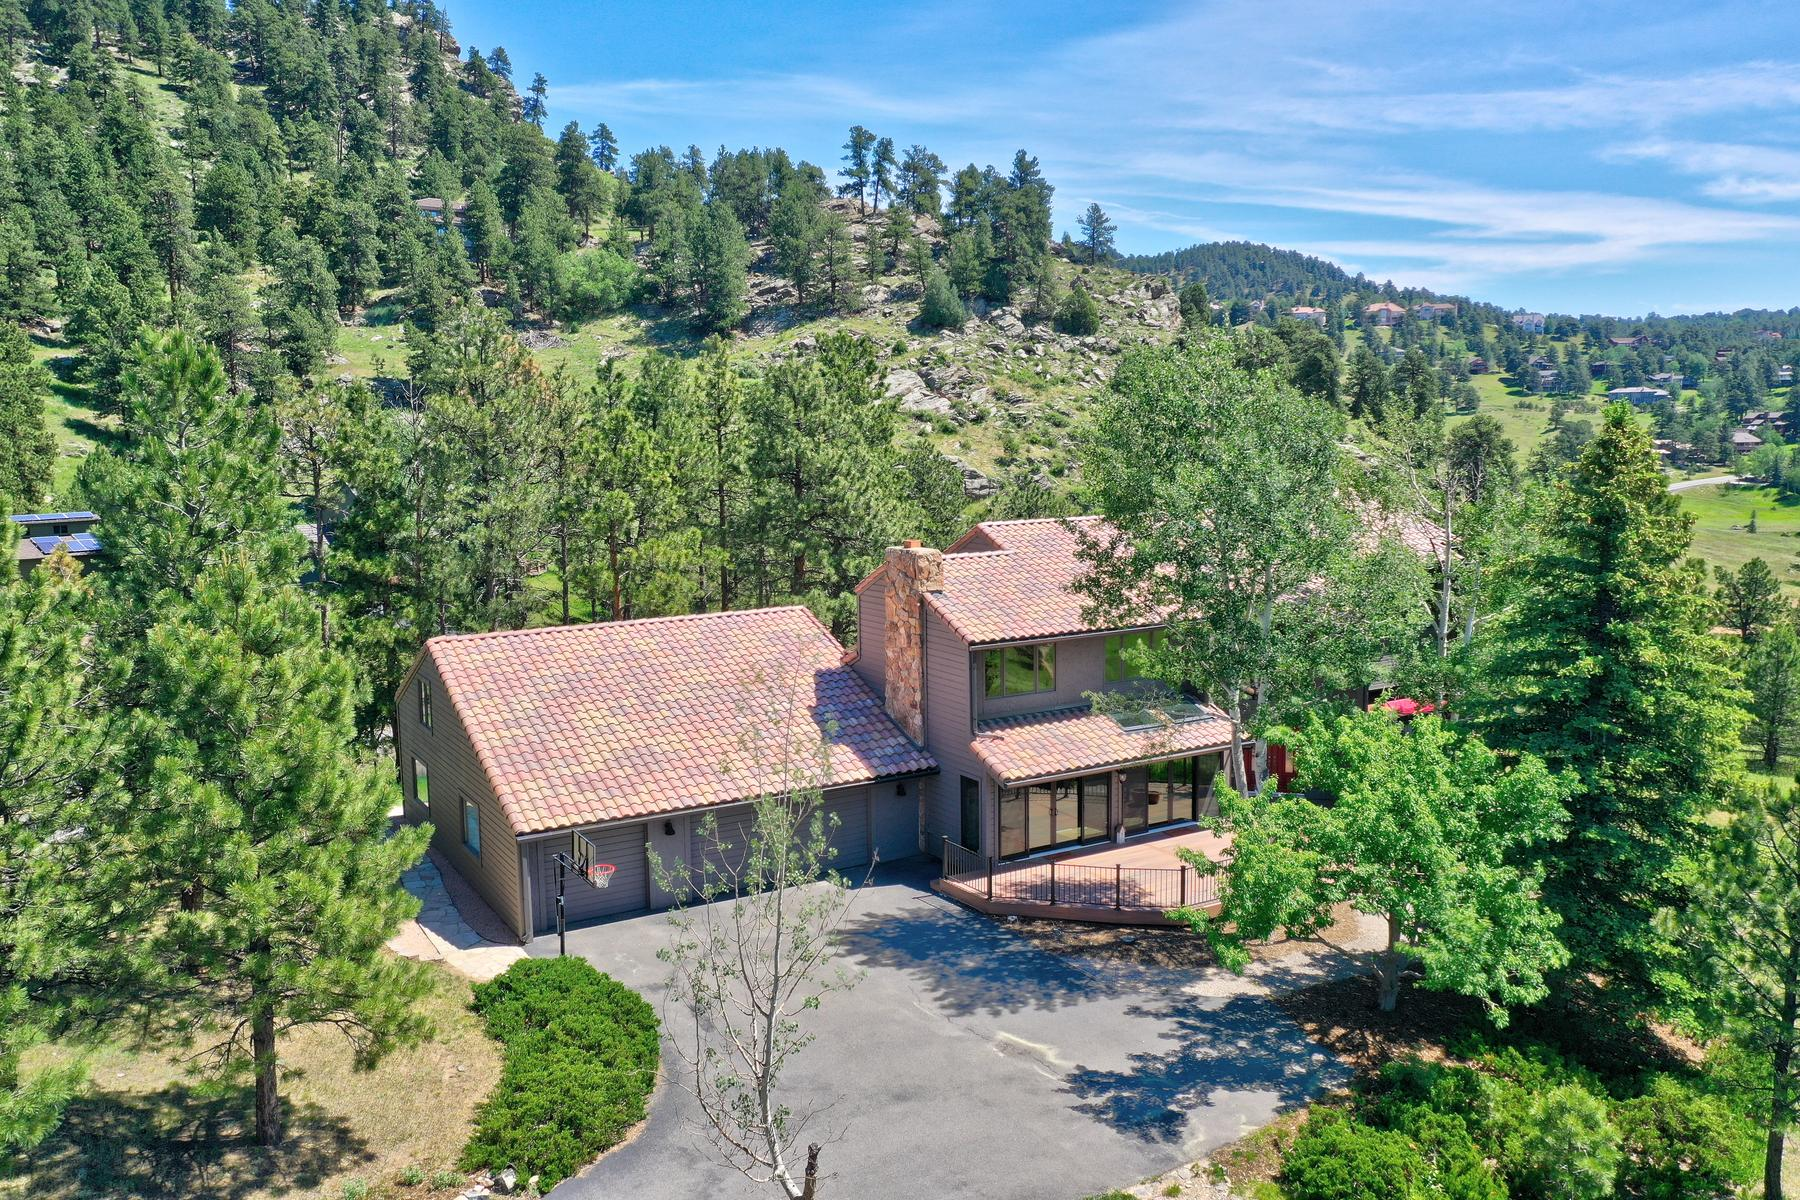 Single Family Homes por un Venta en Immaculate home on a prime lot adjoining open space w/ mountain views 25738 Foothills Drive North, Golden, Colorado 80401 Estados Unidos